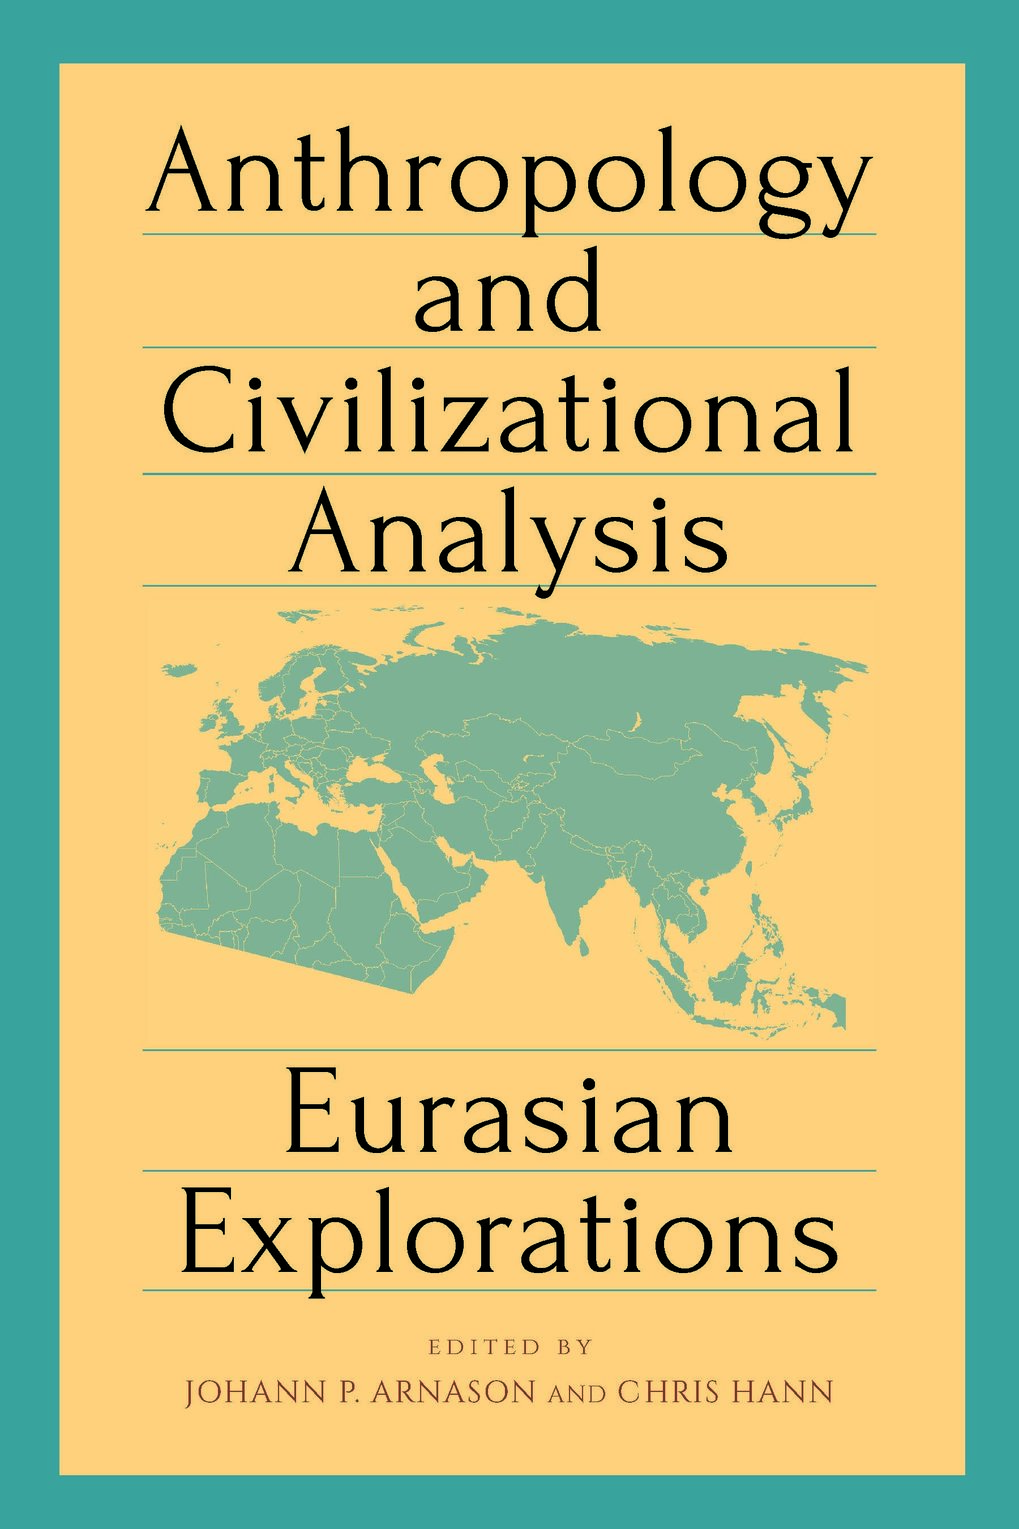 Anthropology and civilizational analysis. Eurasian explorations